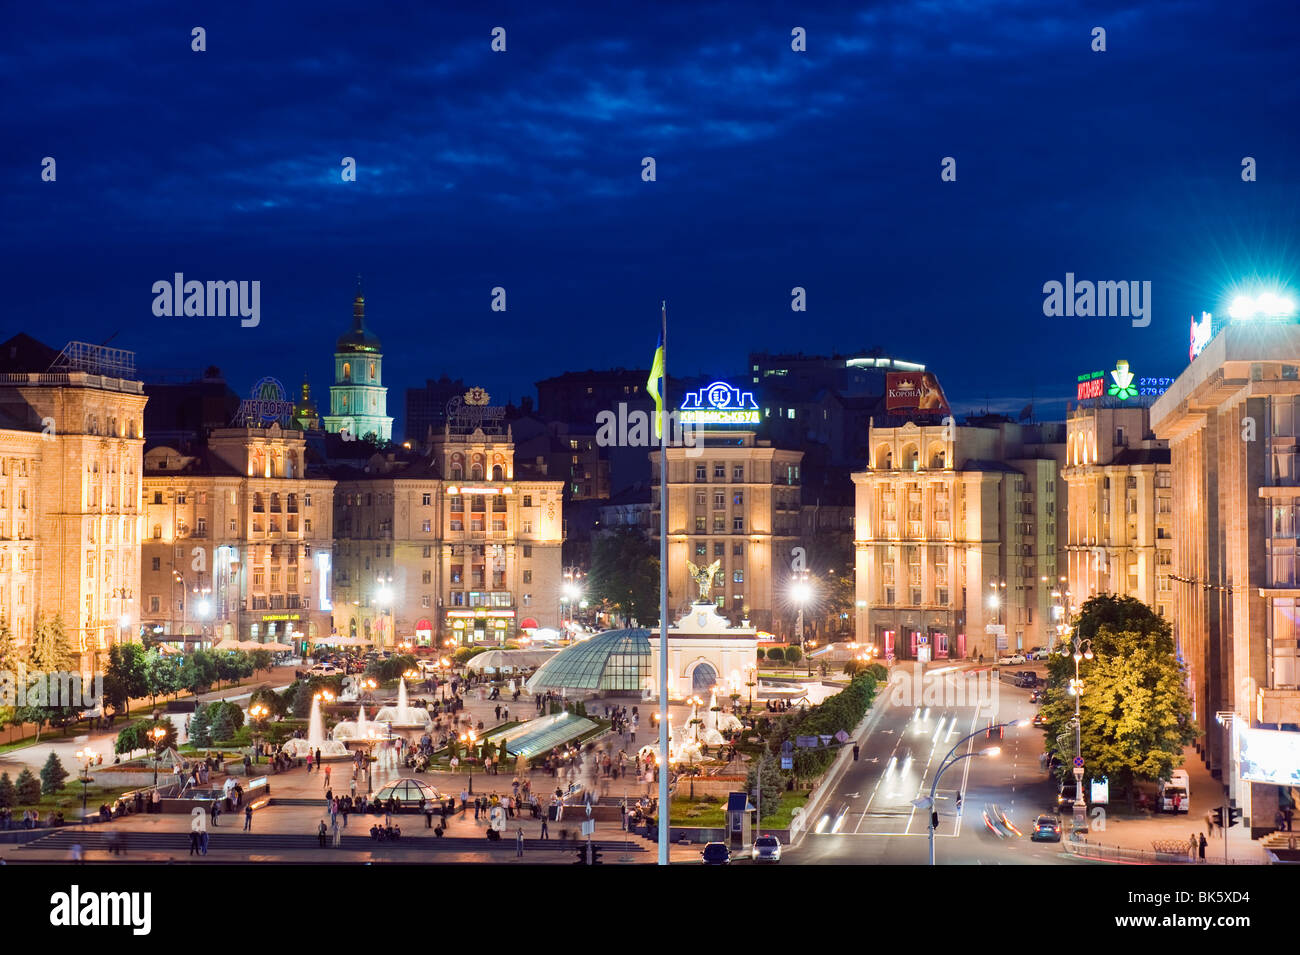 Maidan Nezalezhnosti (Independence Square), Kiev, Ukraine, Europe - Stock Image